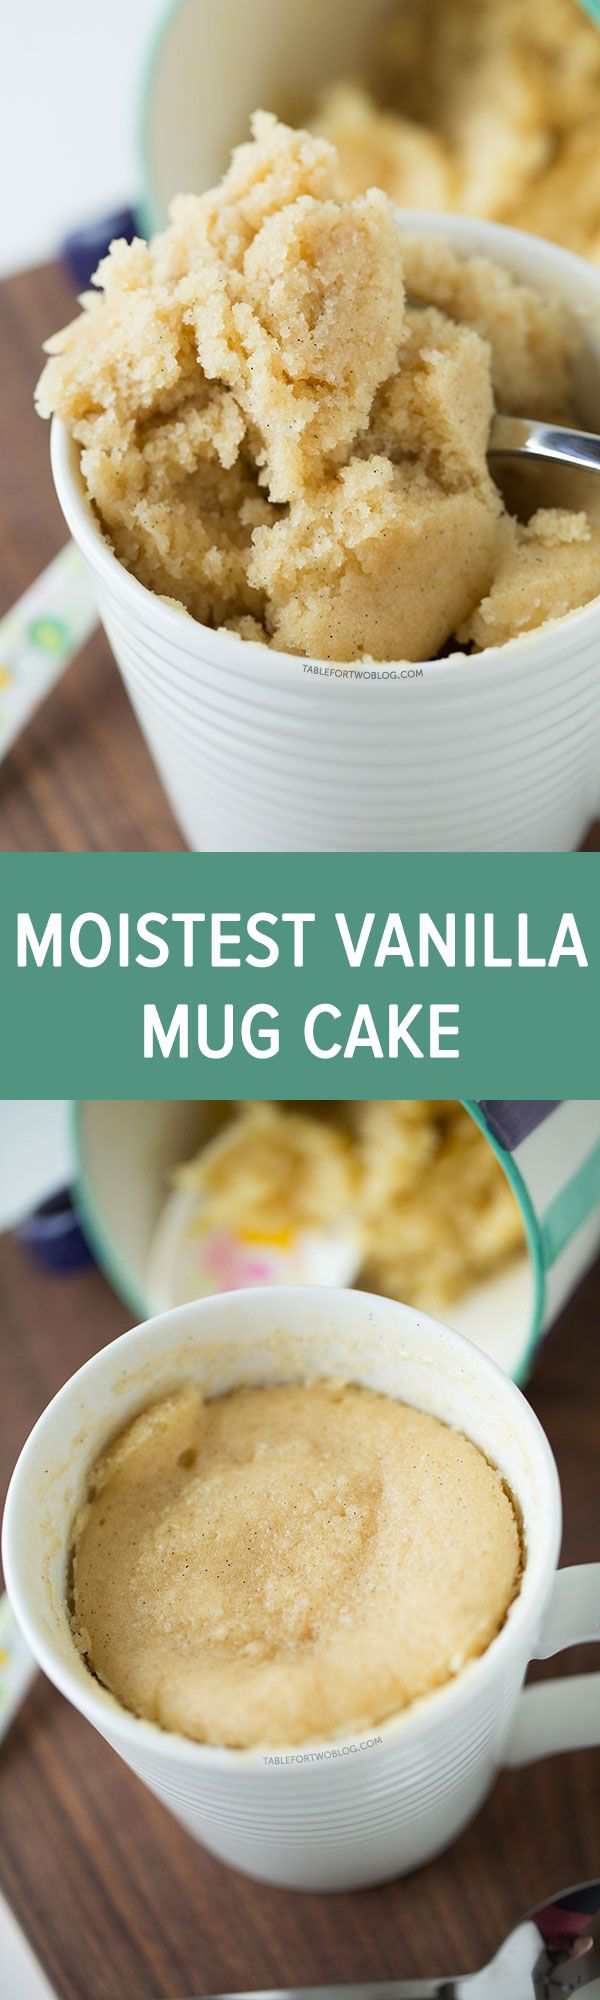 The moistest very vanilla mug cake is like a fluffy vanilla cupcake in a mug! Recipe on tablefortwoblog.com